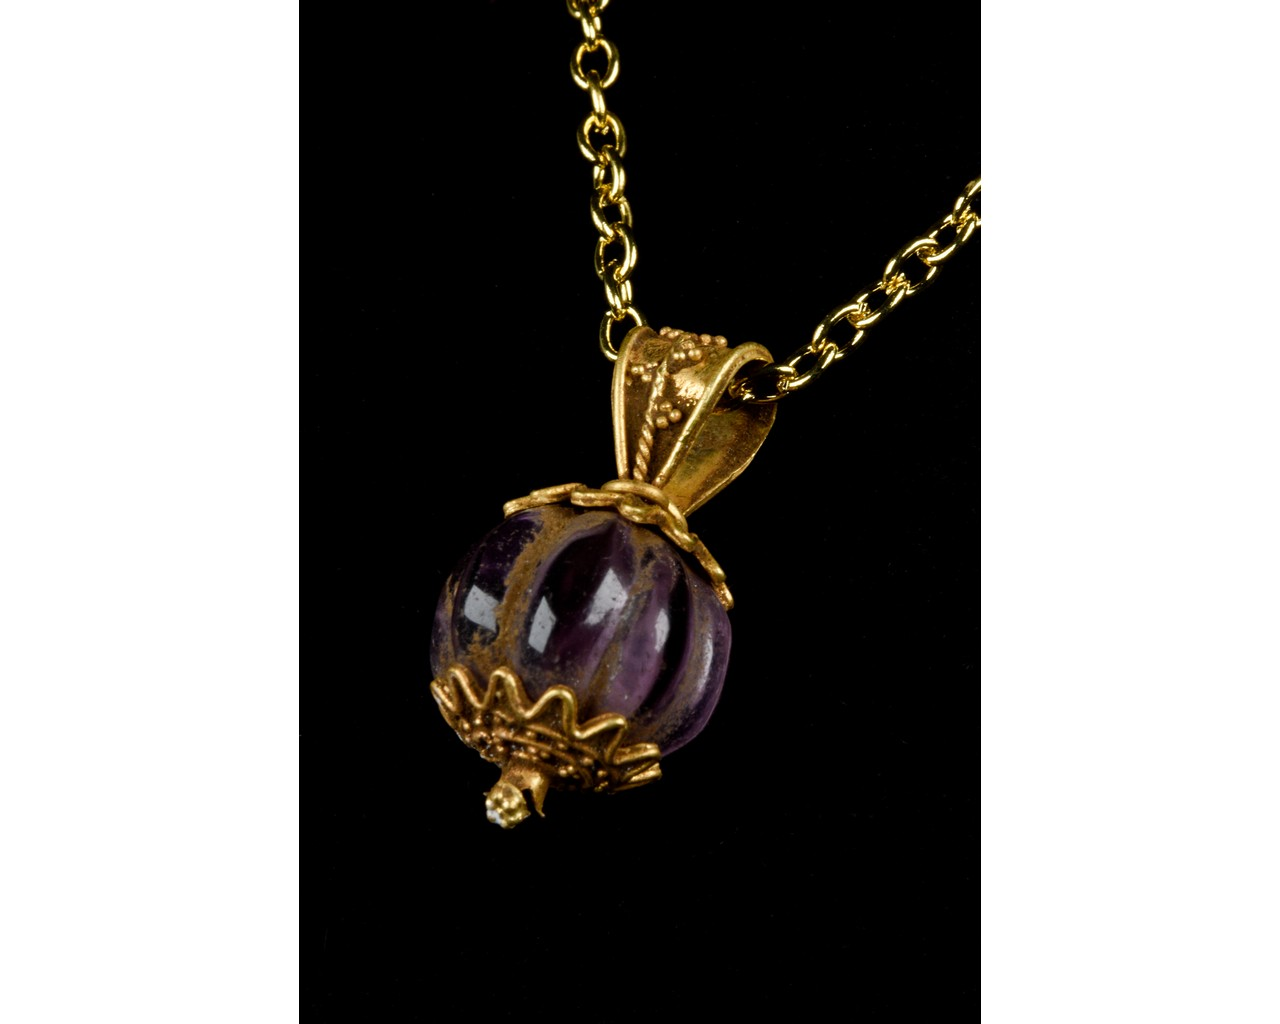 ANCIENT GREEK GOLD PENDANT WITH AMETHYST STONE - FULL ANALYSIS - Image 2 of 8